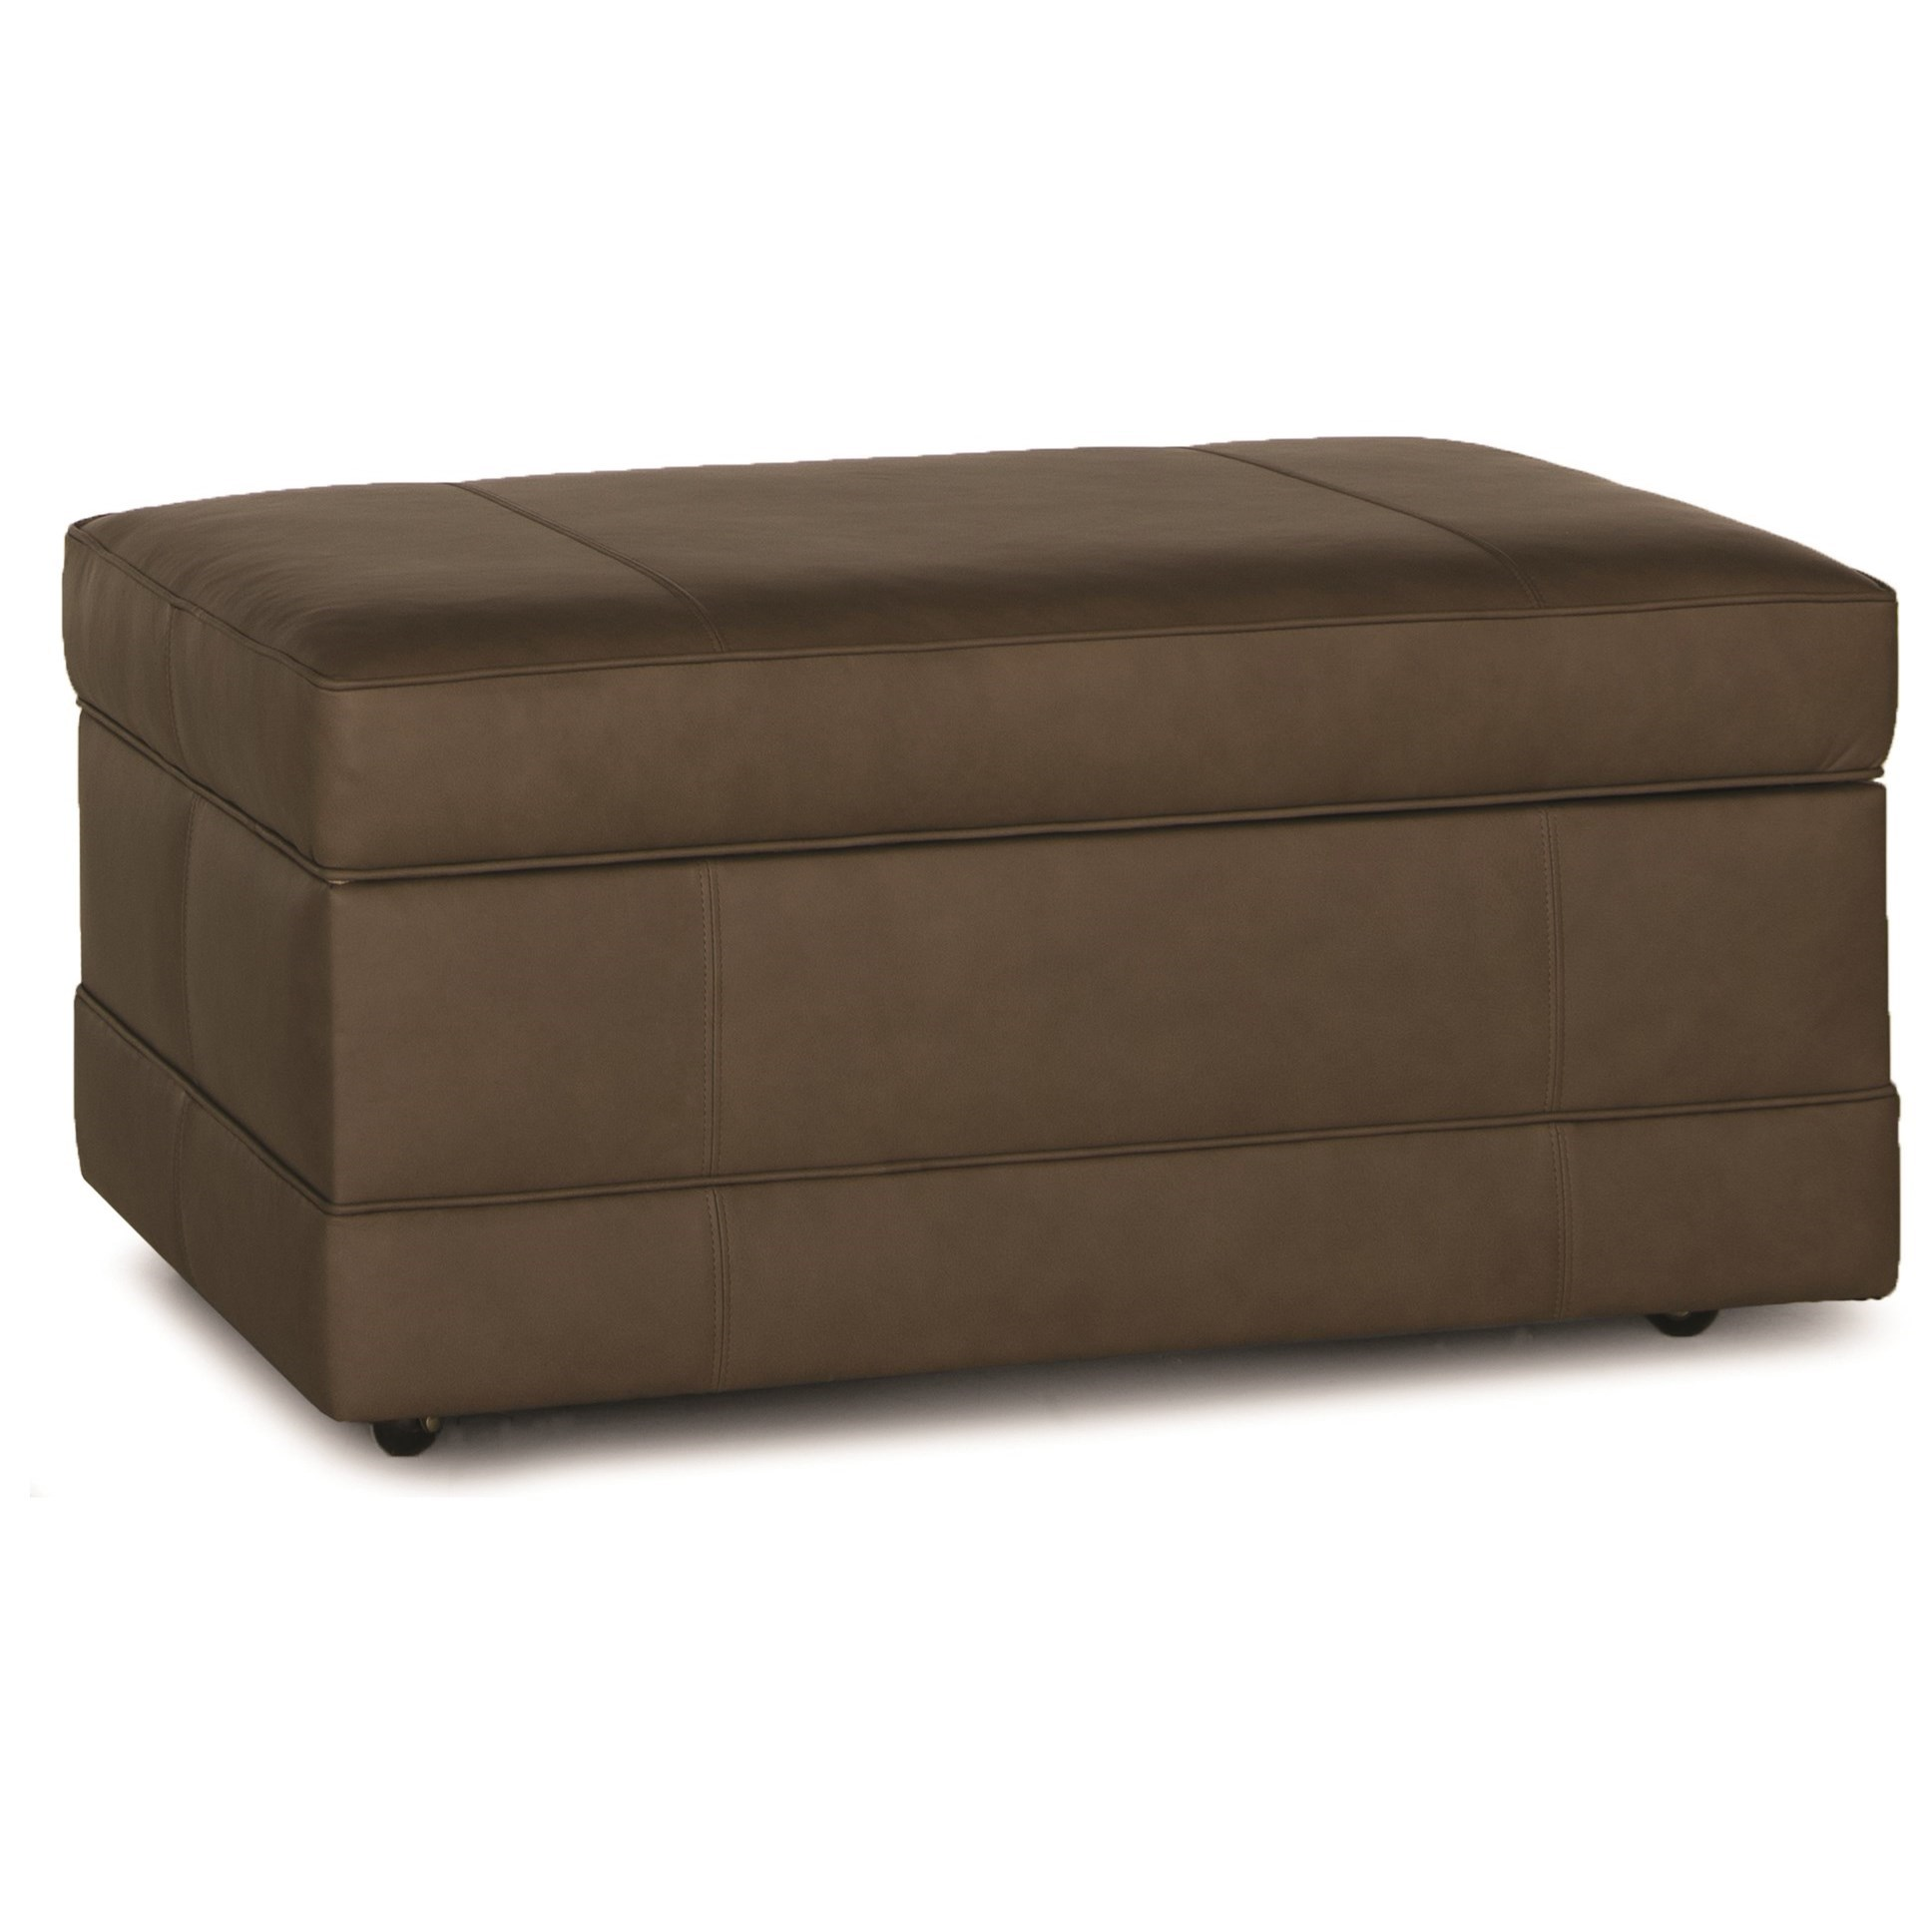 900 Storage Ottoman by Smith Brothers at Mueller Furniture